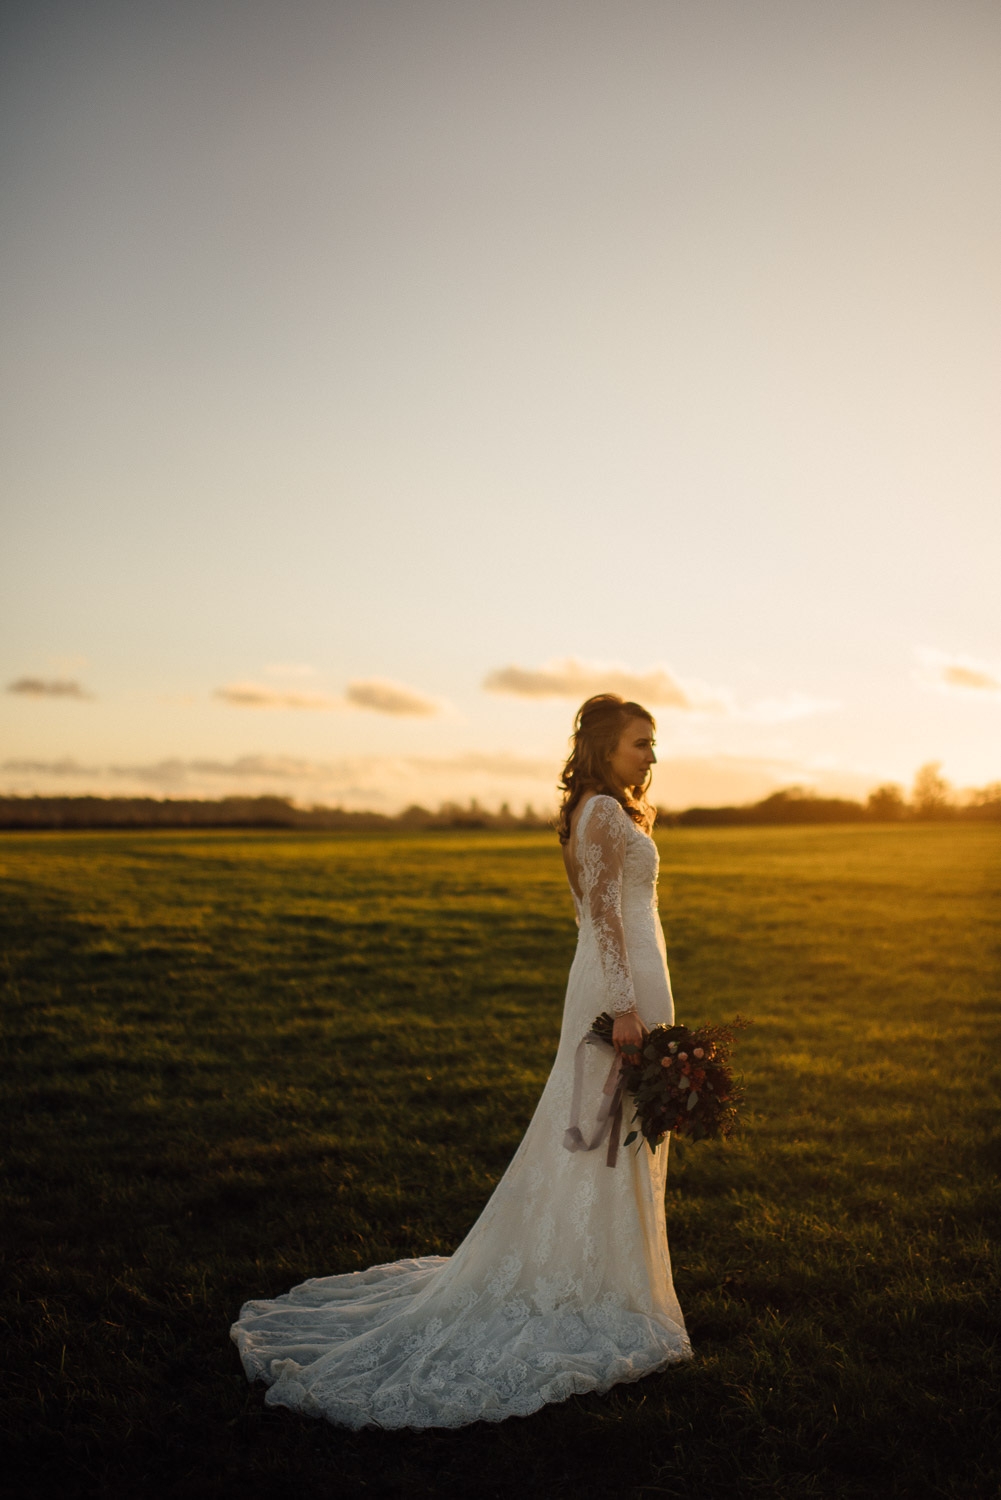 bride in lace dress during golden hour by creative and alternative london wedding photographer the shannons photography